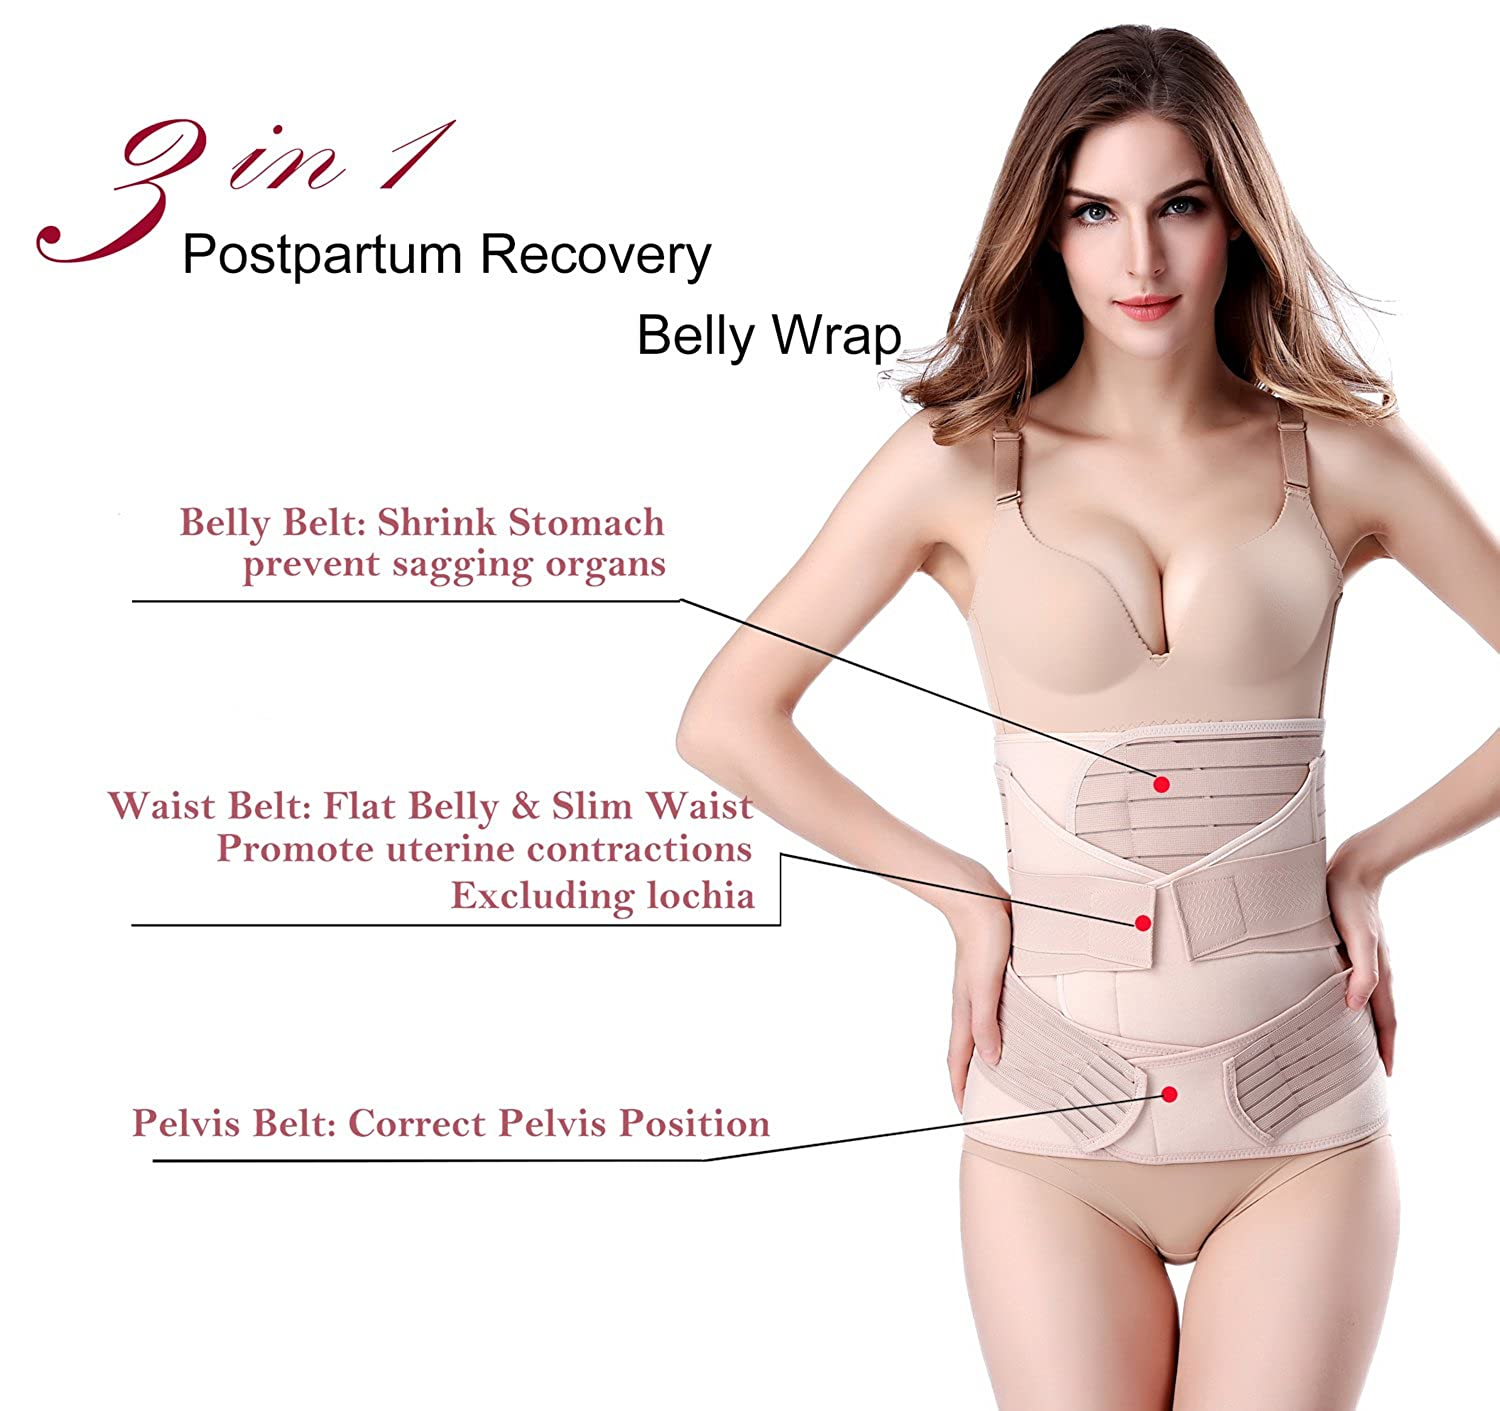 6dd99b0993 3 in 1 Postpartum Support - Recovery Belly Wrap Waist Belt Girdles C  section Shapewear  Amazon.co.uk  Clothing